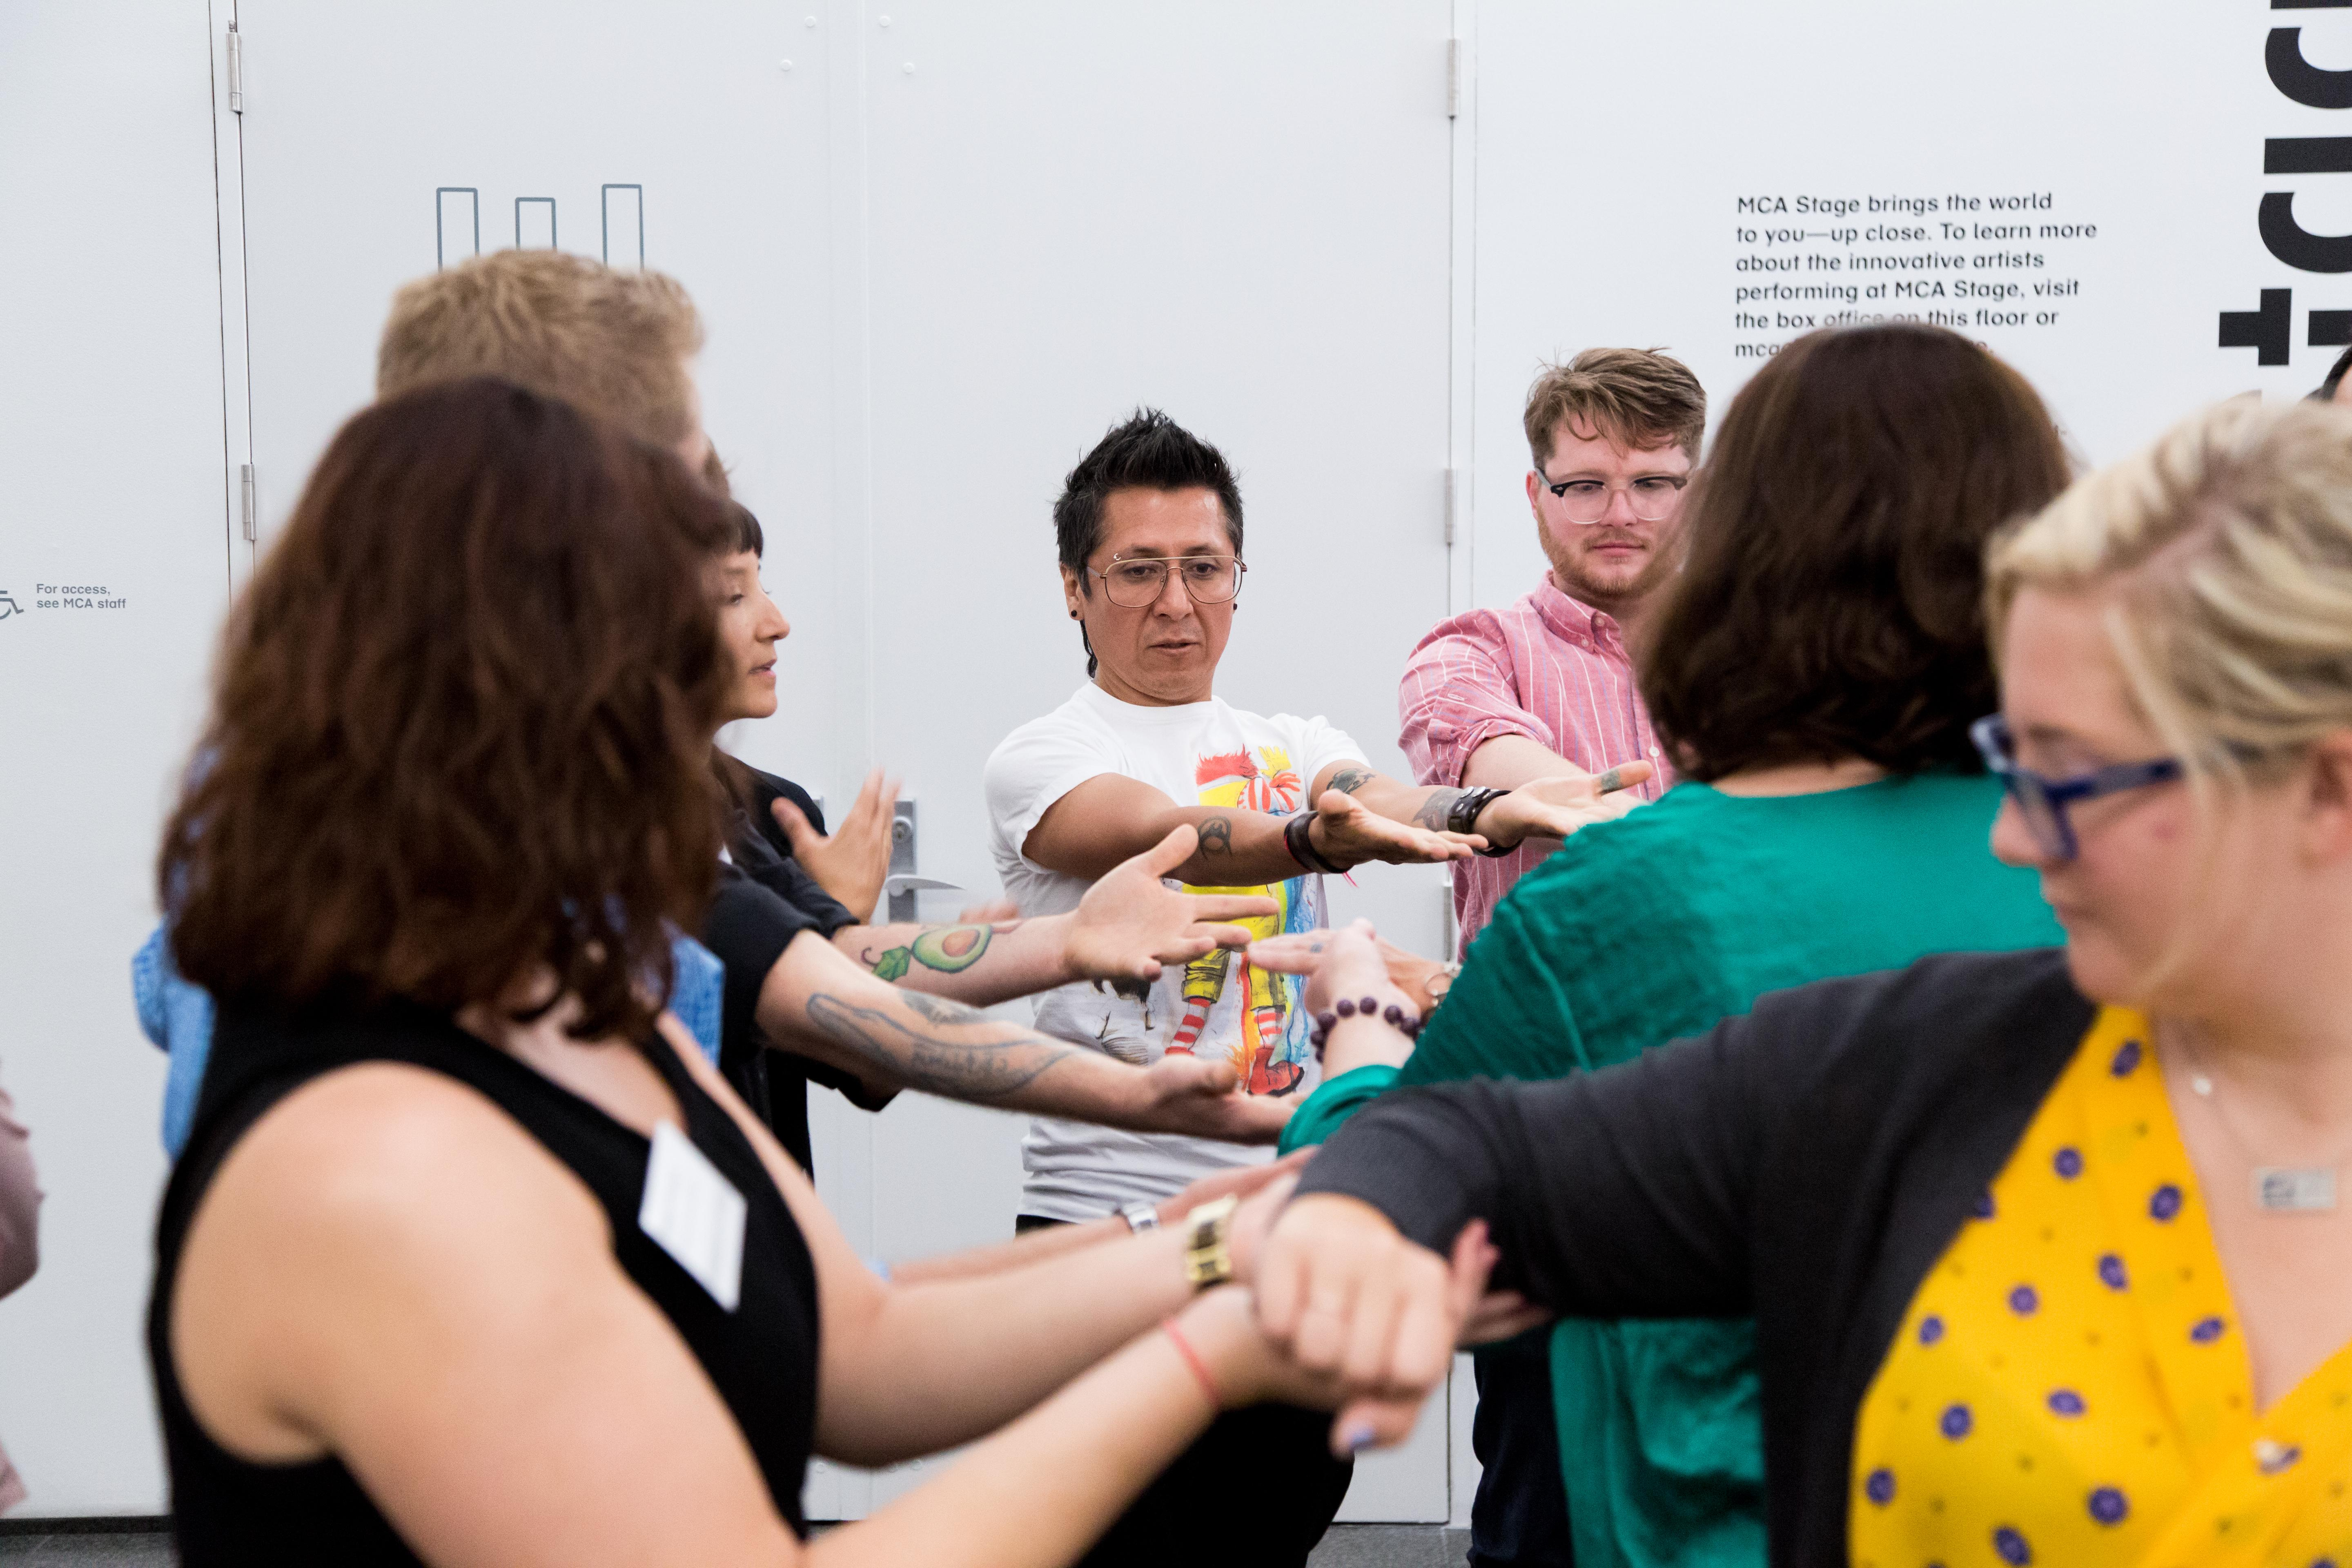 A group of adults, arms outstretched, participate a group activity.